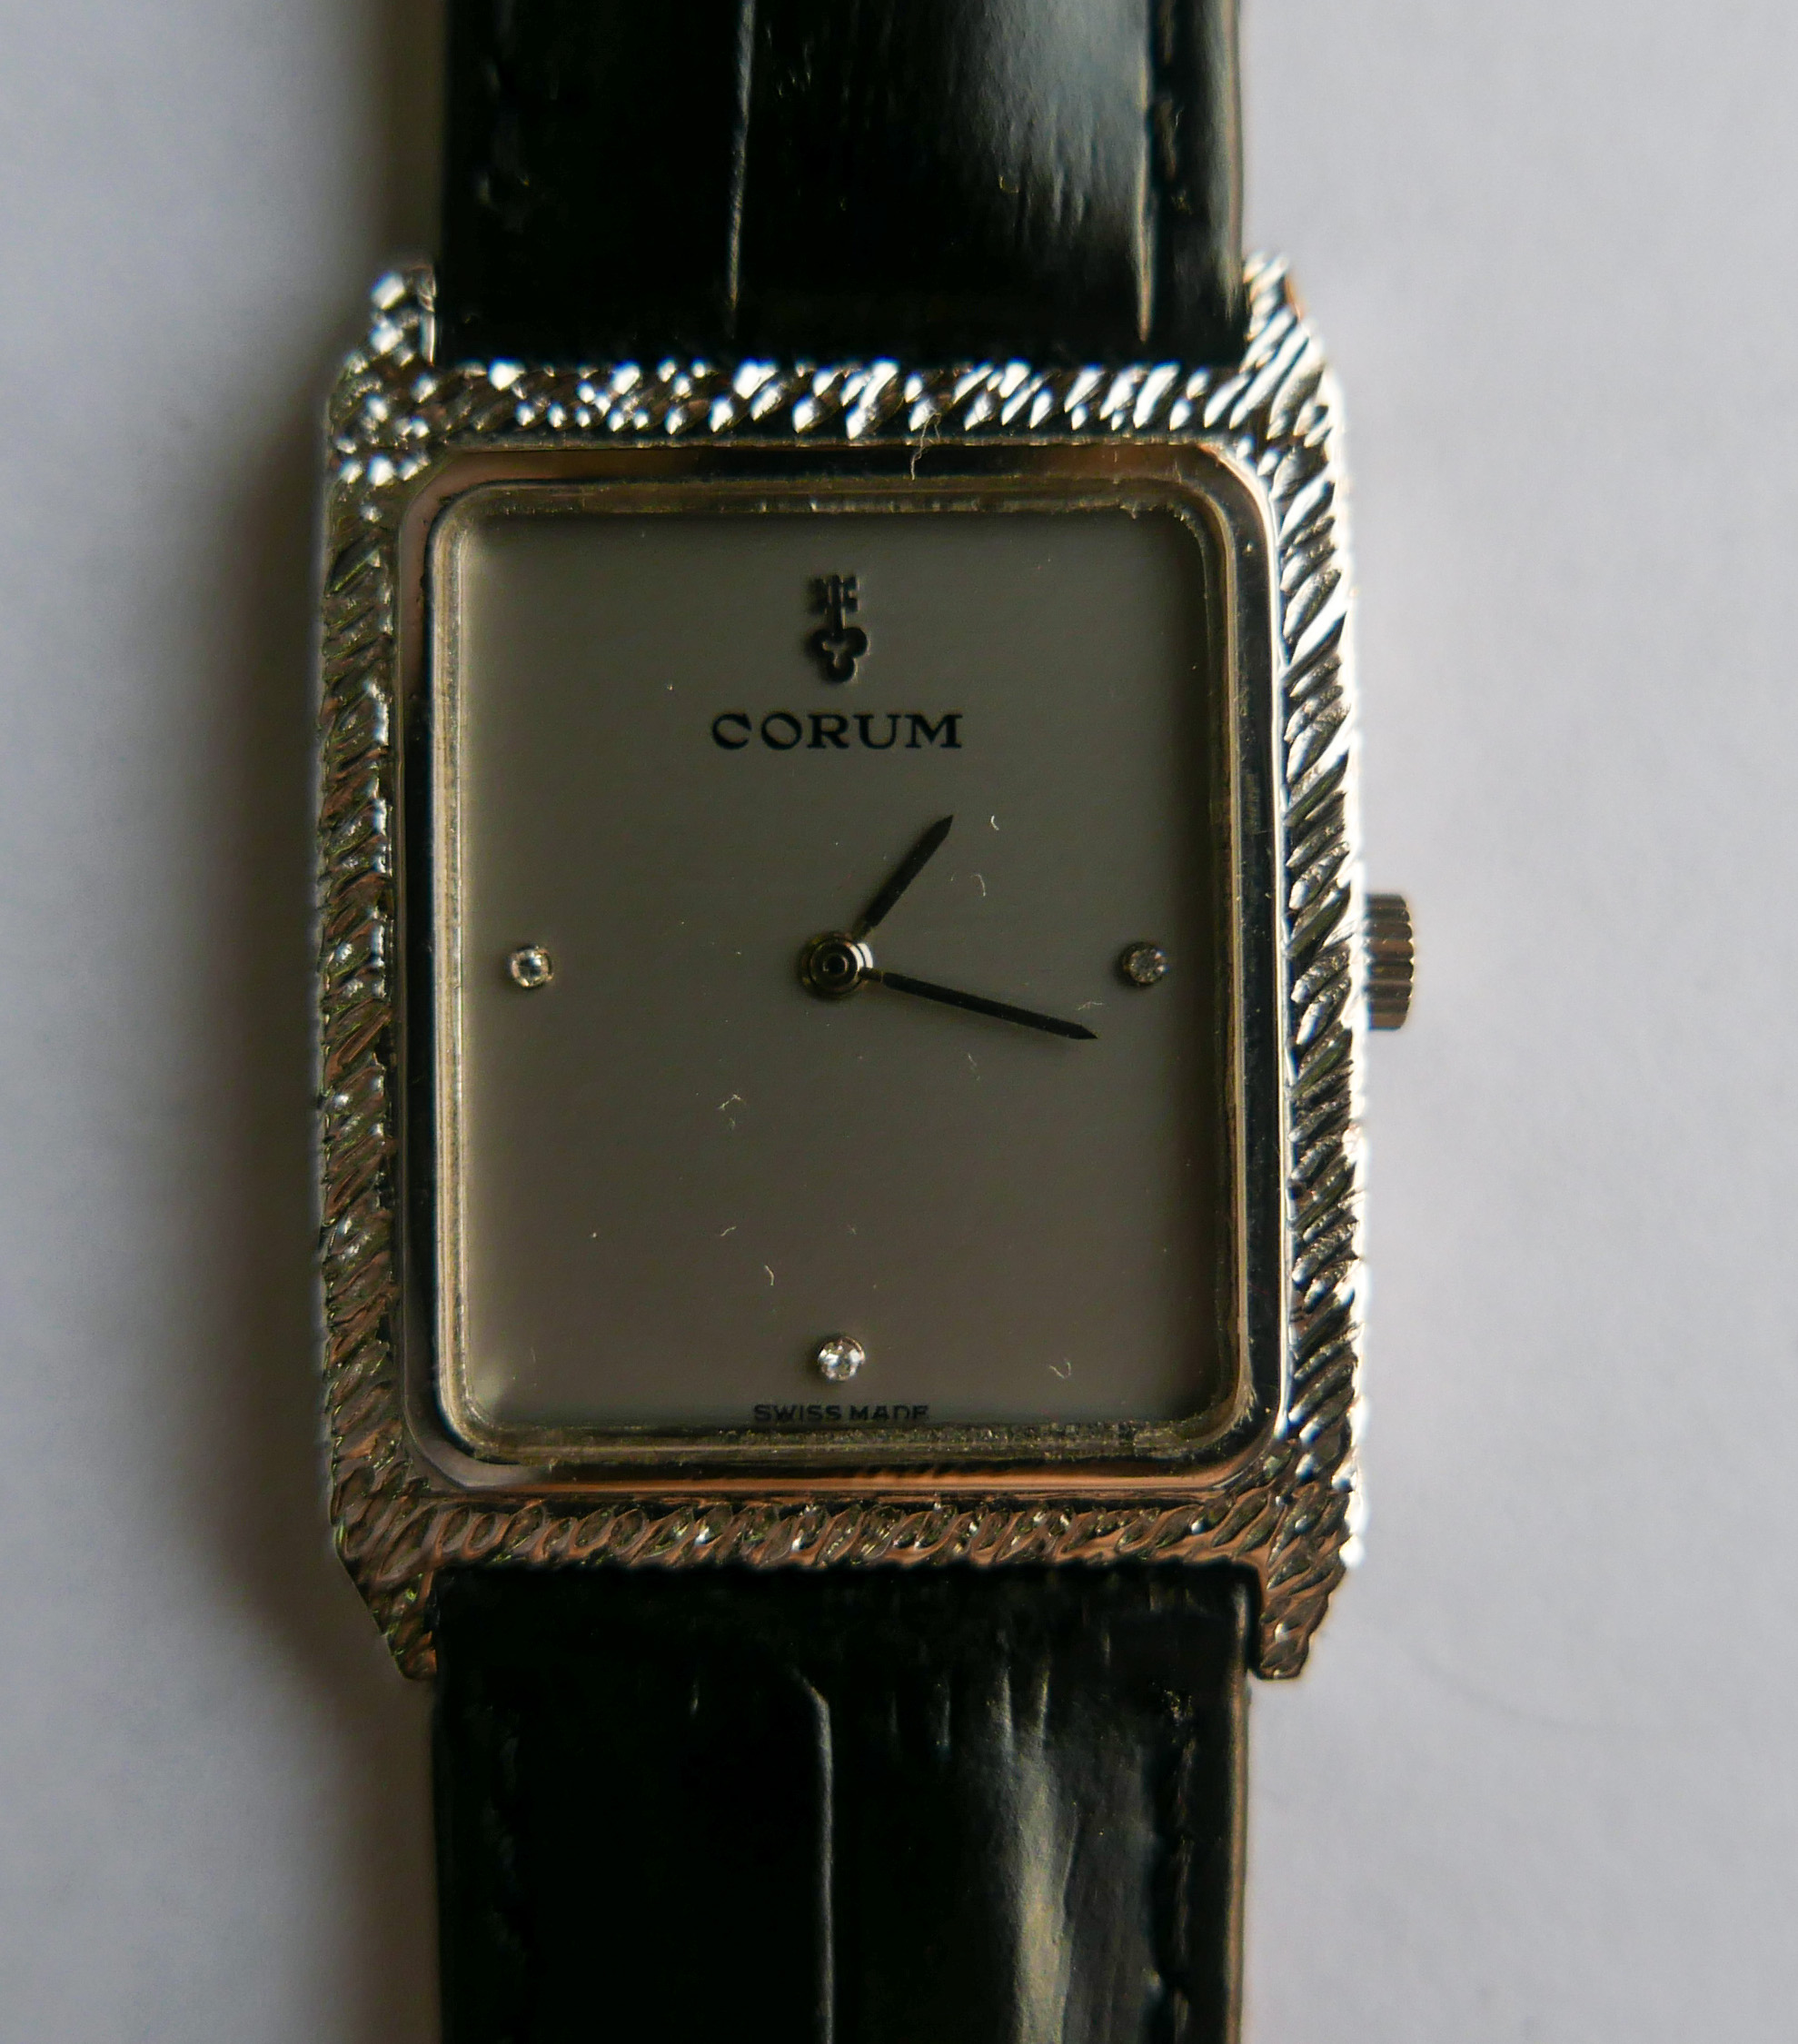 CORUM Watch - CORUM (332243) front image (front cover)